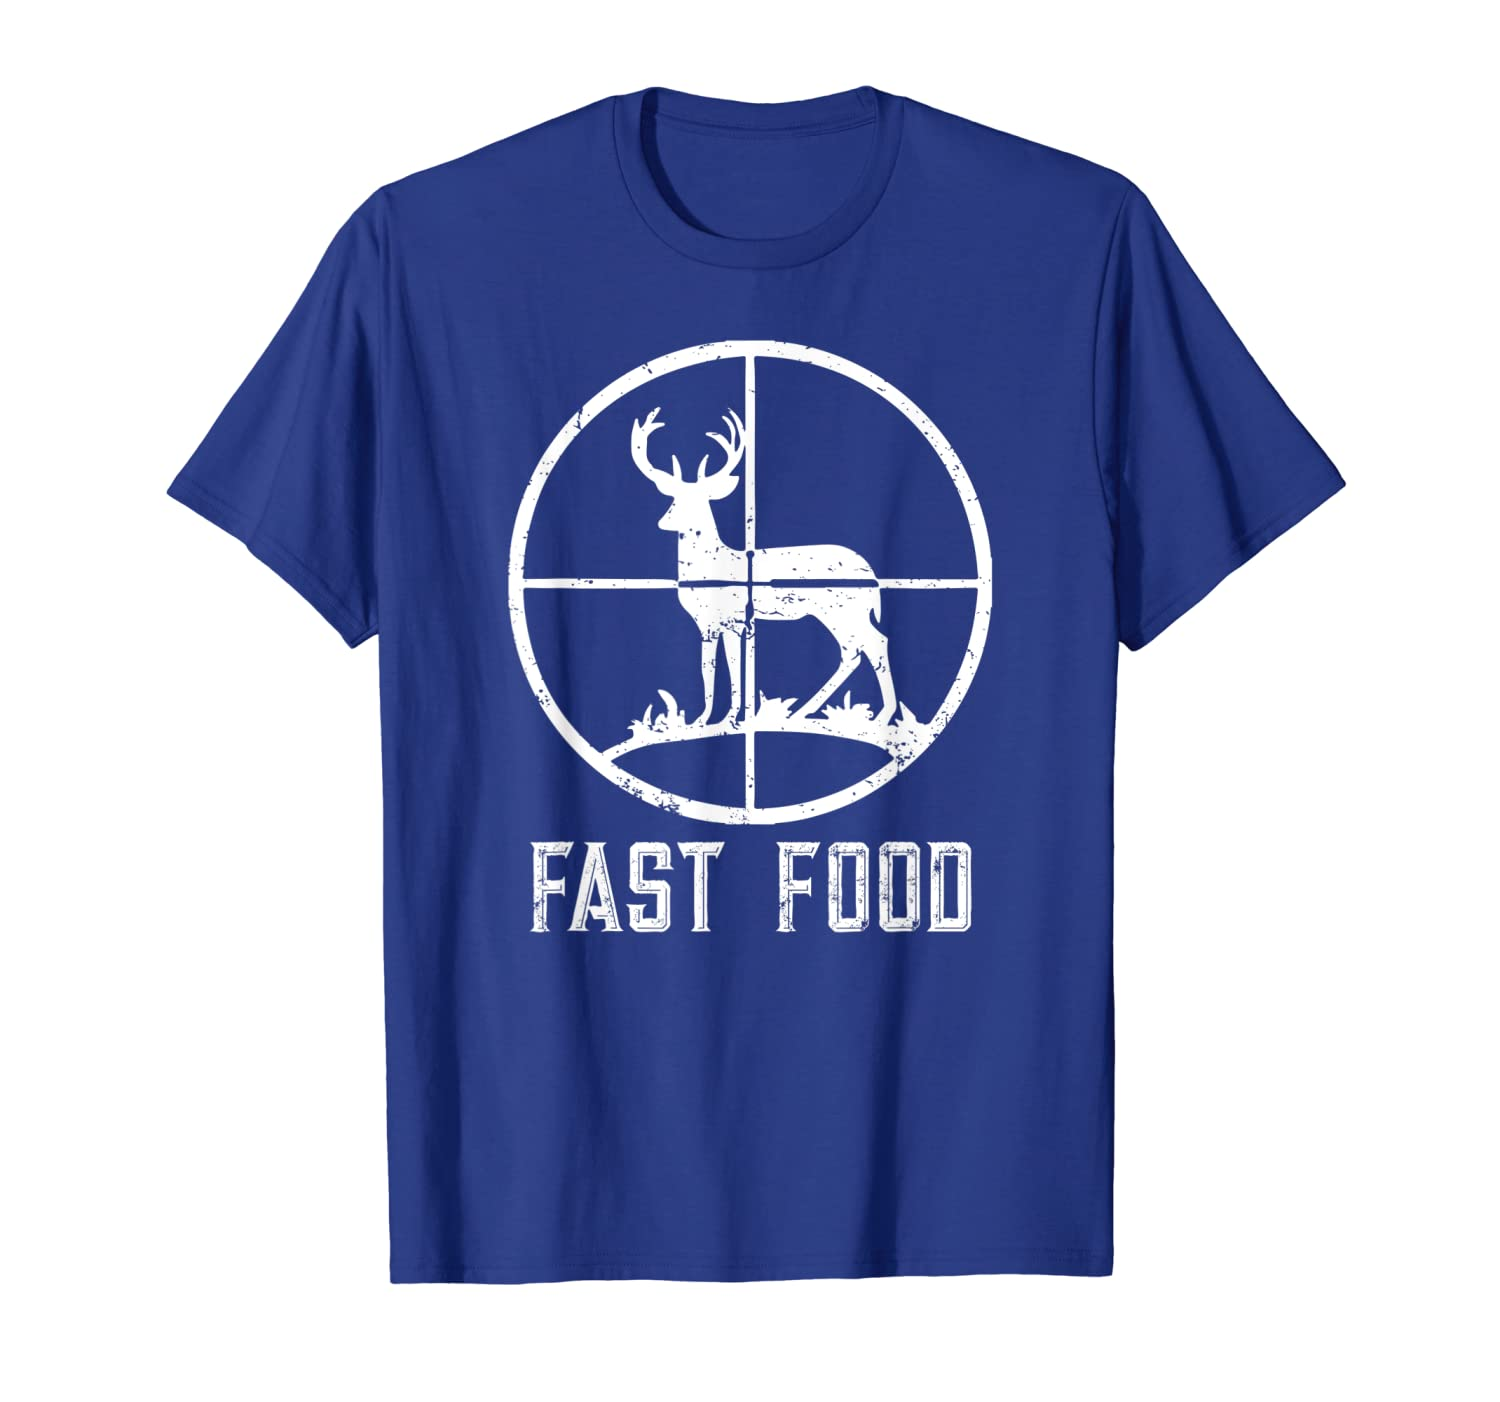 Fast Food Deer Hunting T-Shirt Funny Gift For Hunters T-Shirt Unisex Tshirt